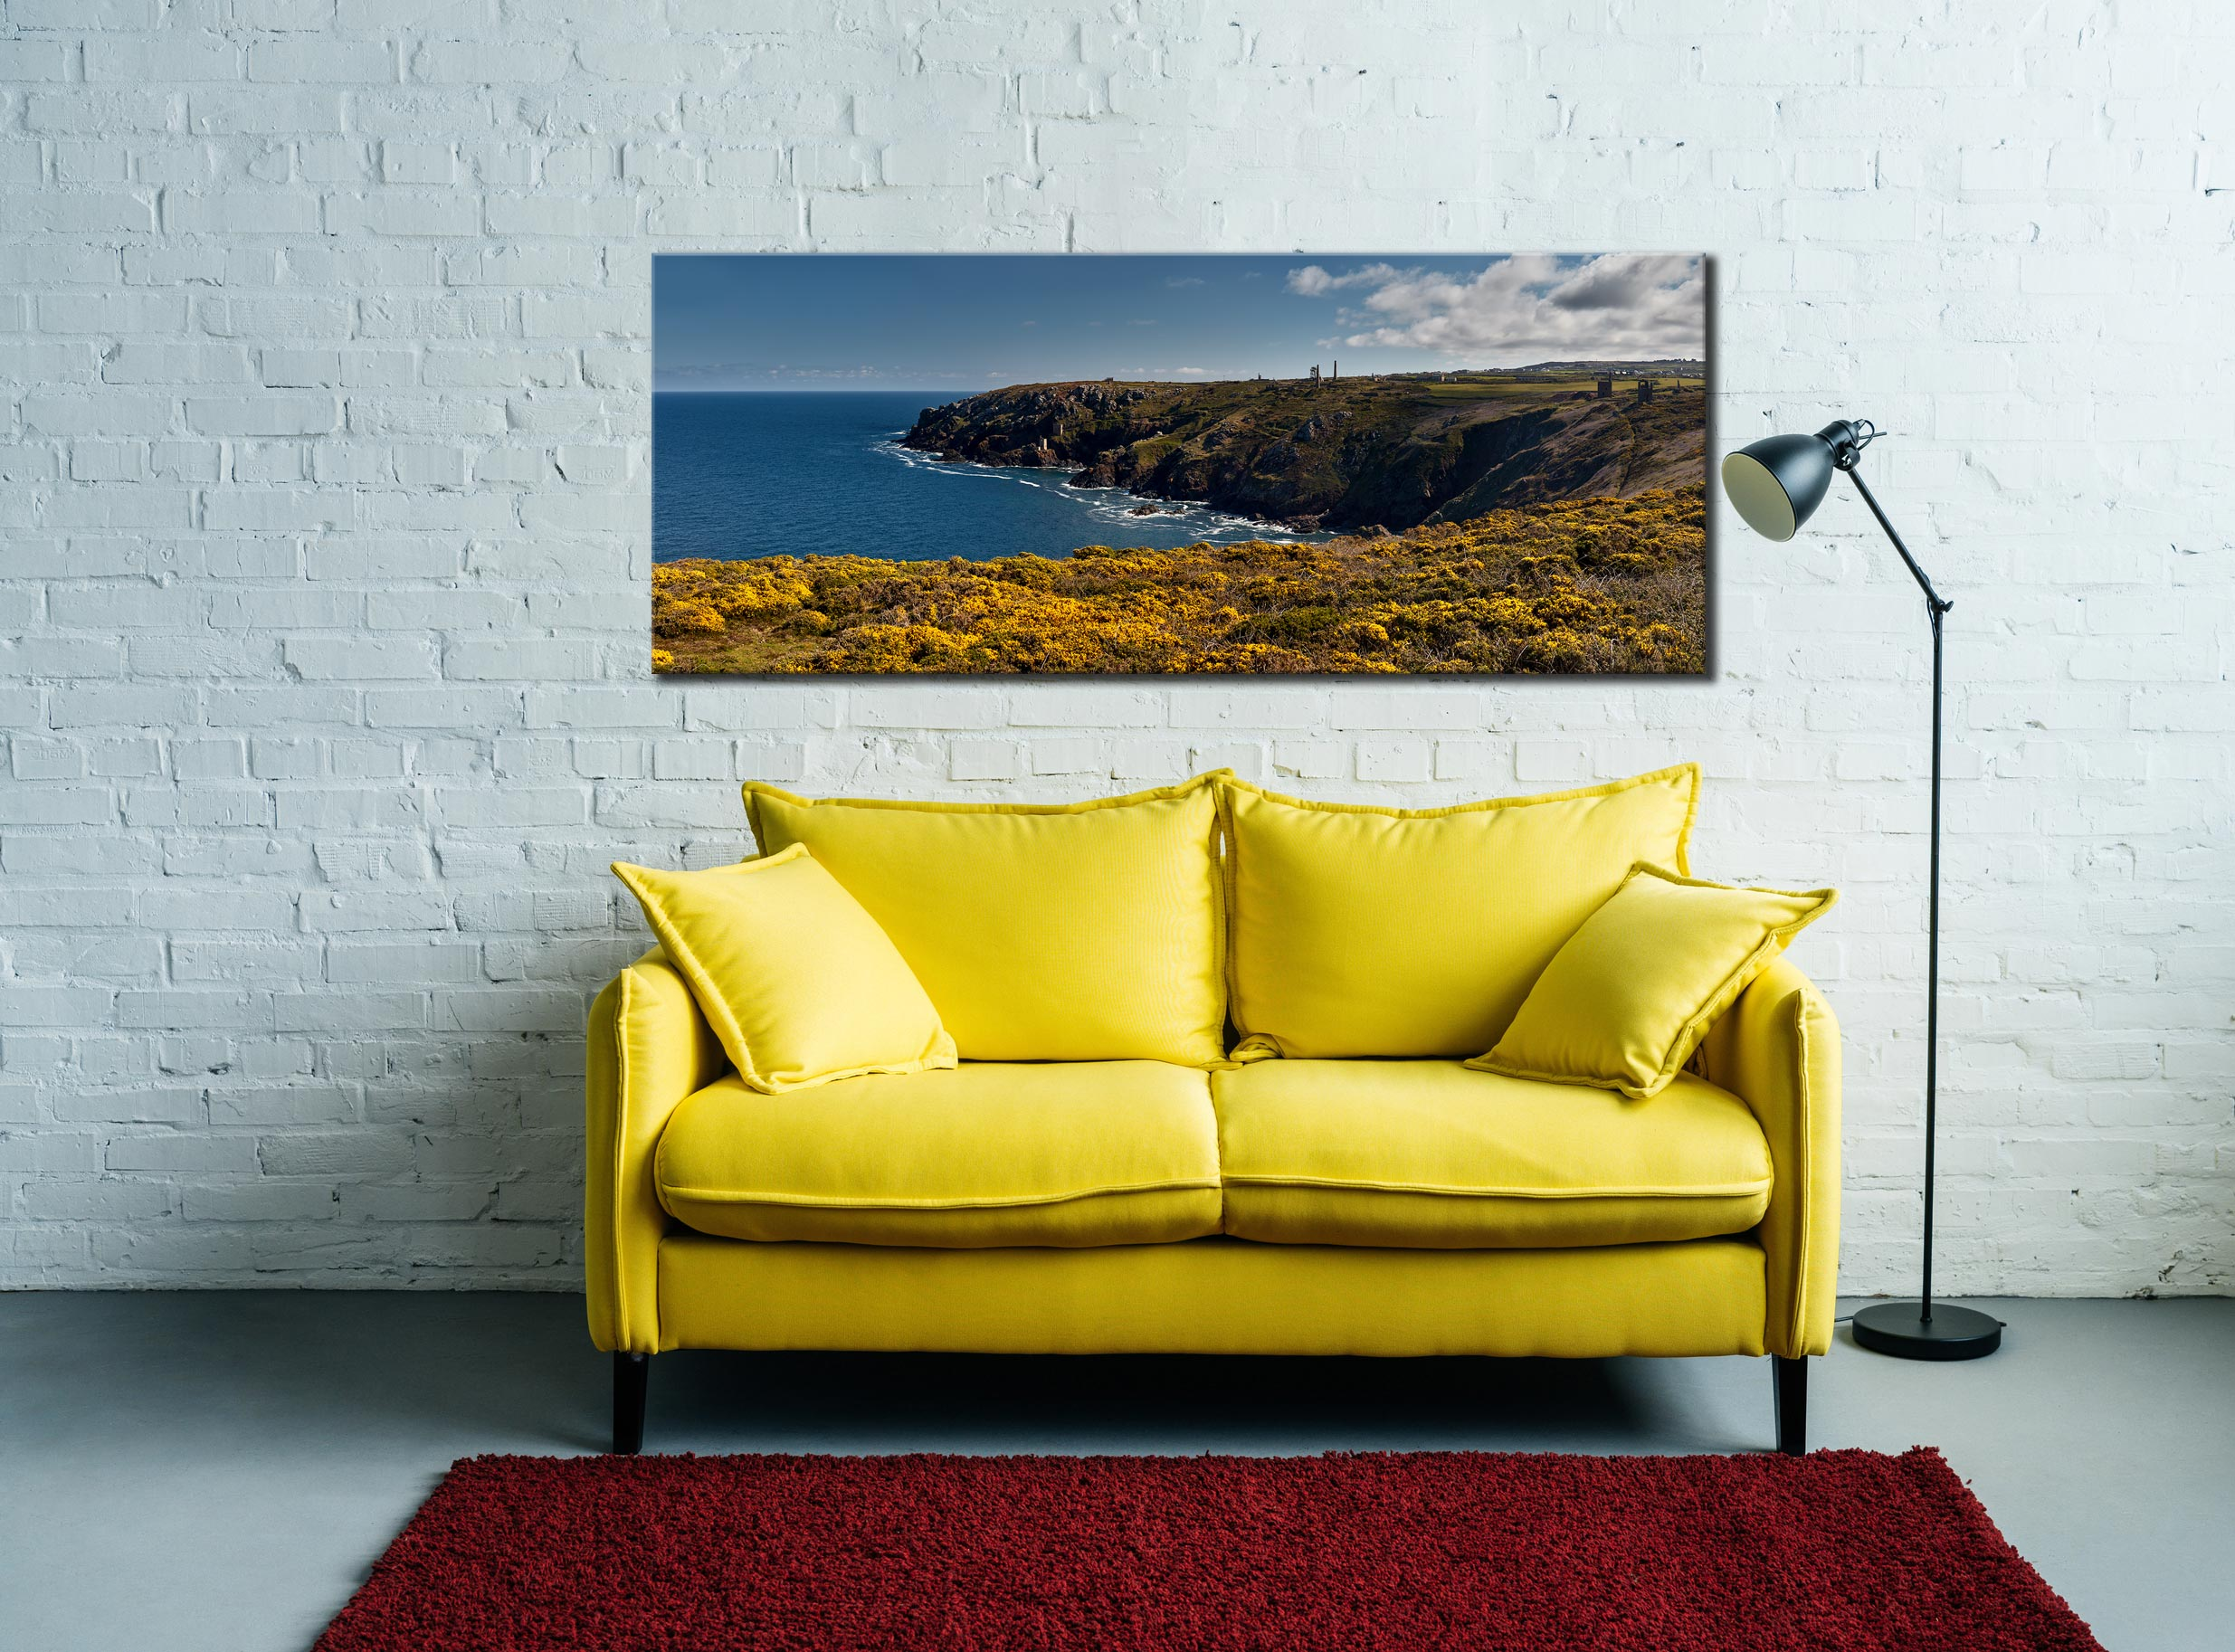 Botallack Mines Yellow Gorse - Canvas Print on Wall